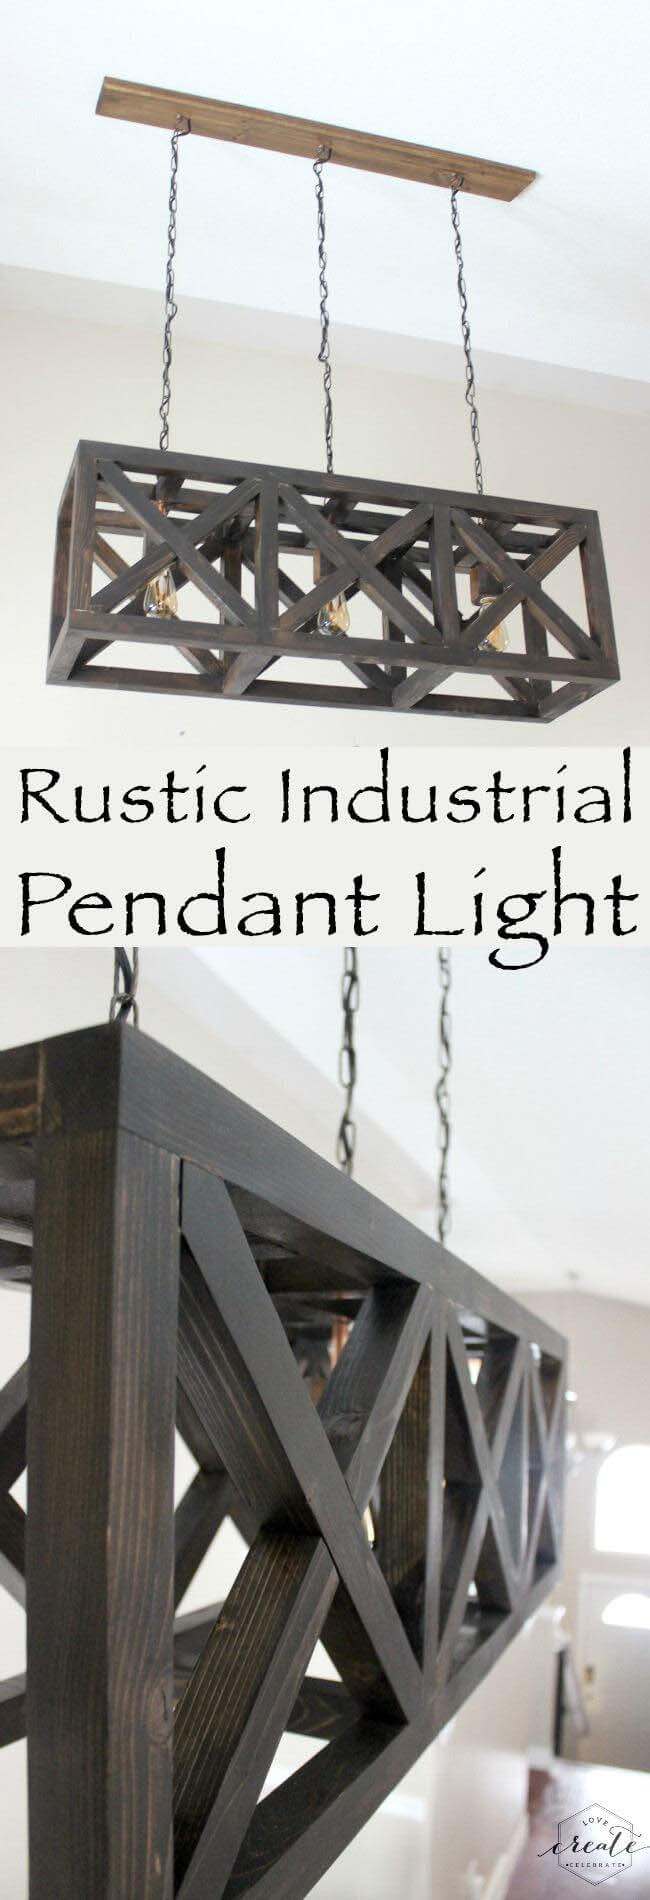 Rustic Industrial Pendant Light #reclaimed #wood #projects #decorhomeideas